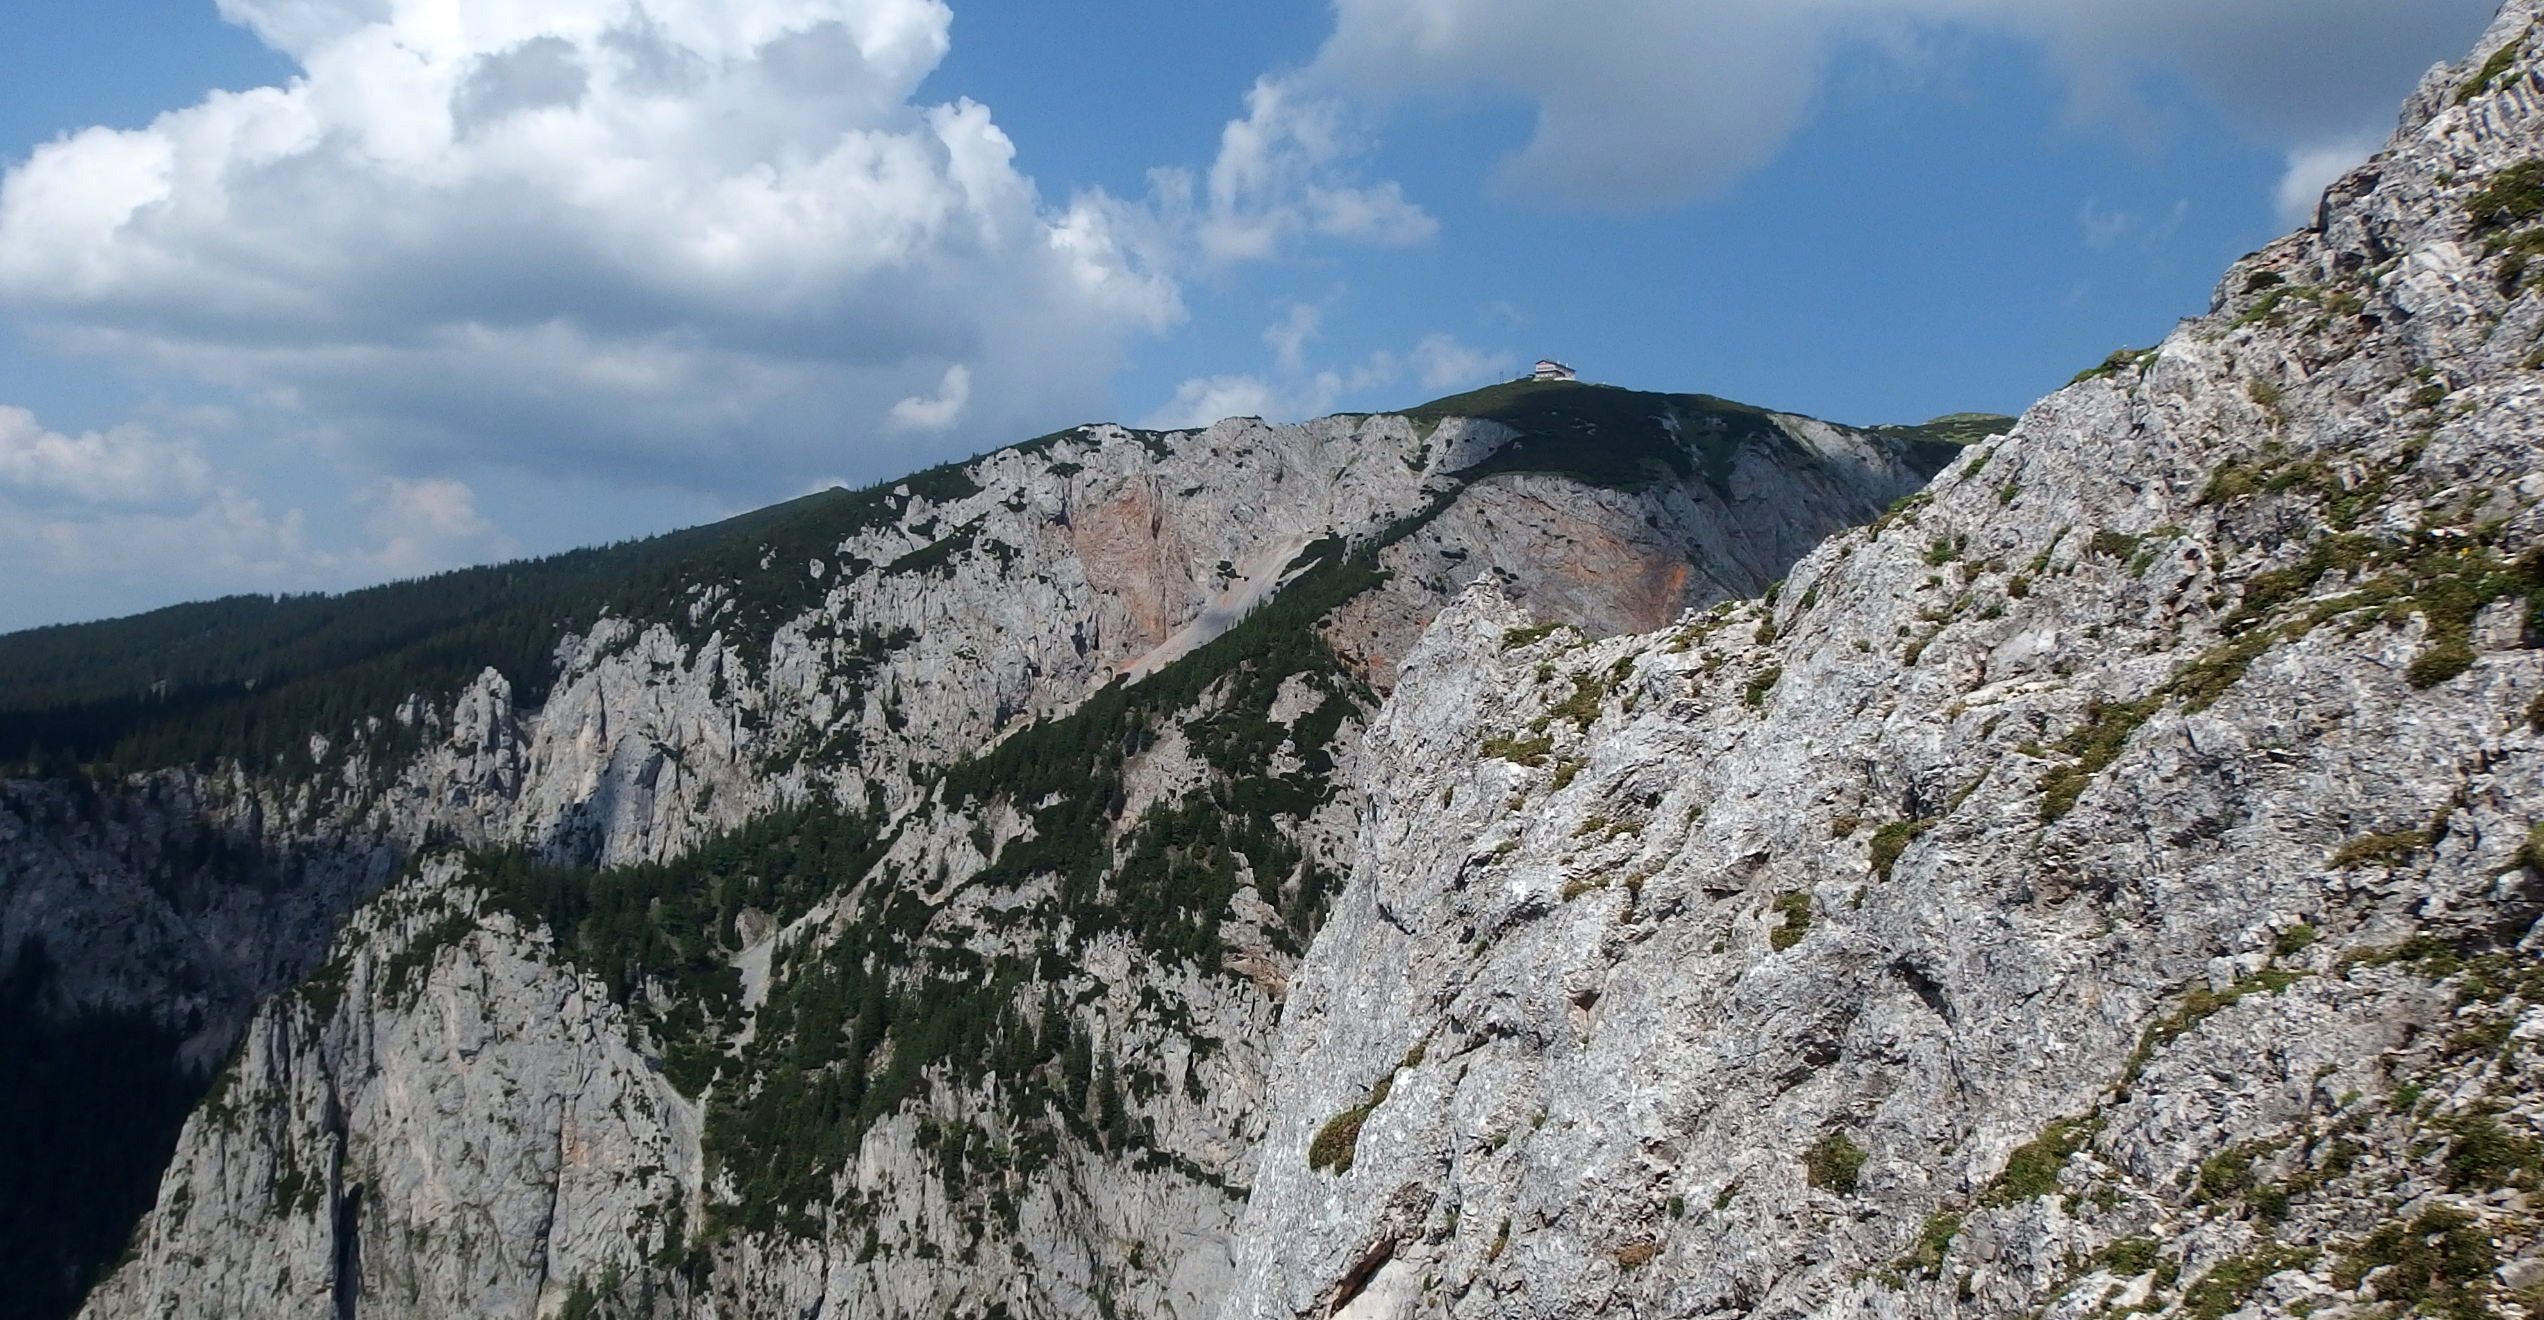 Wildfährte – ferrata with great views and medium difficulties